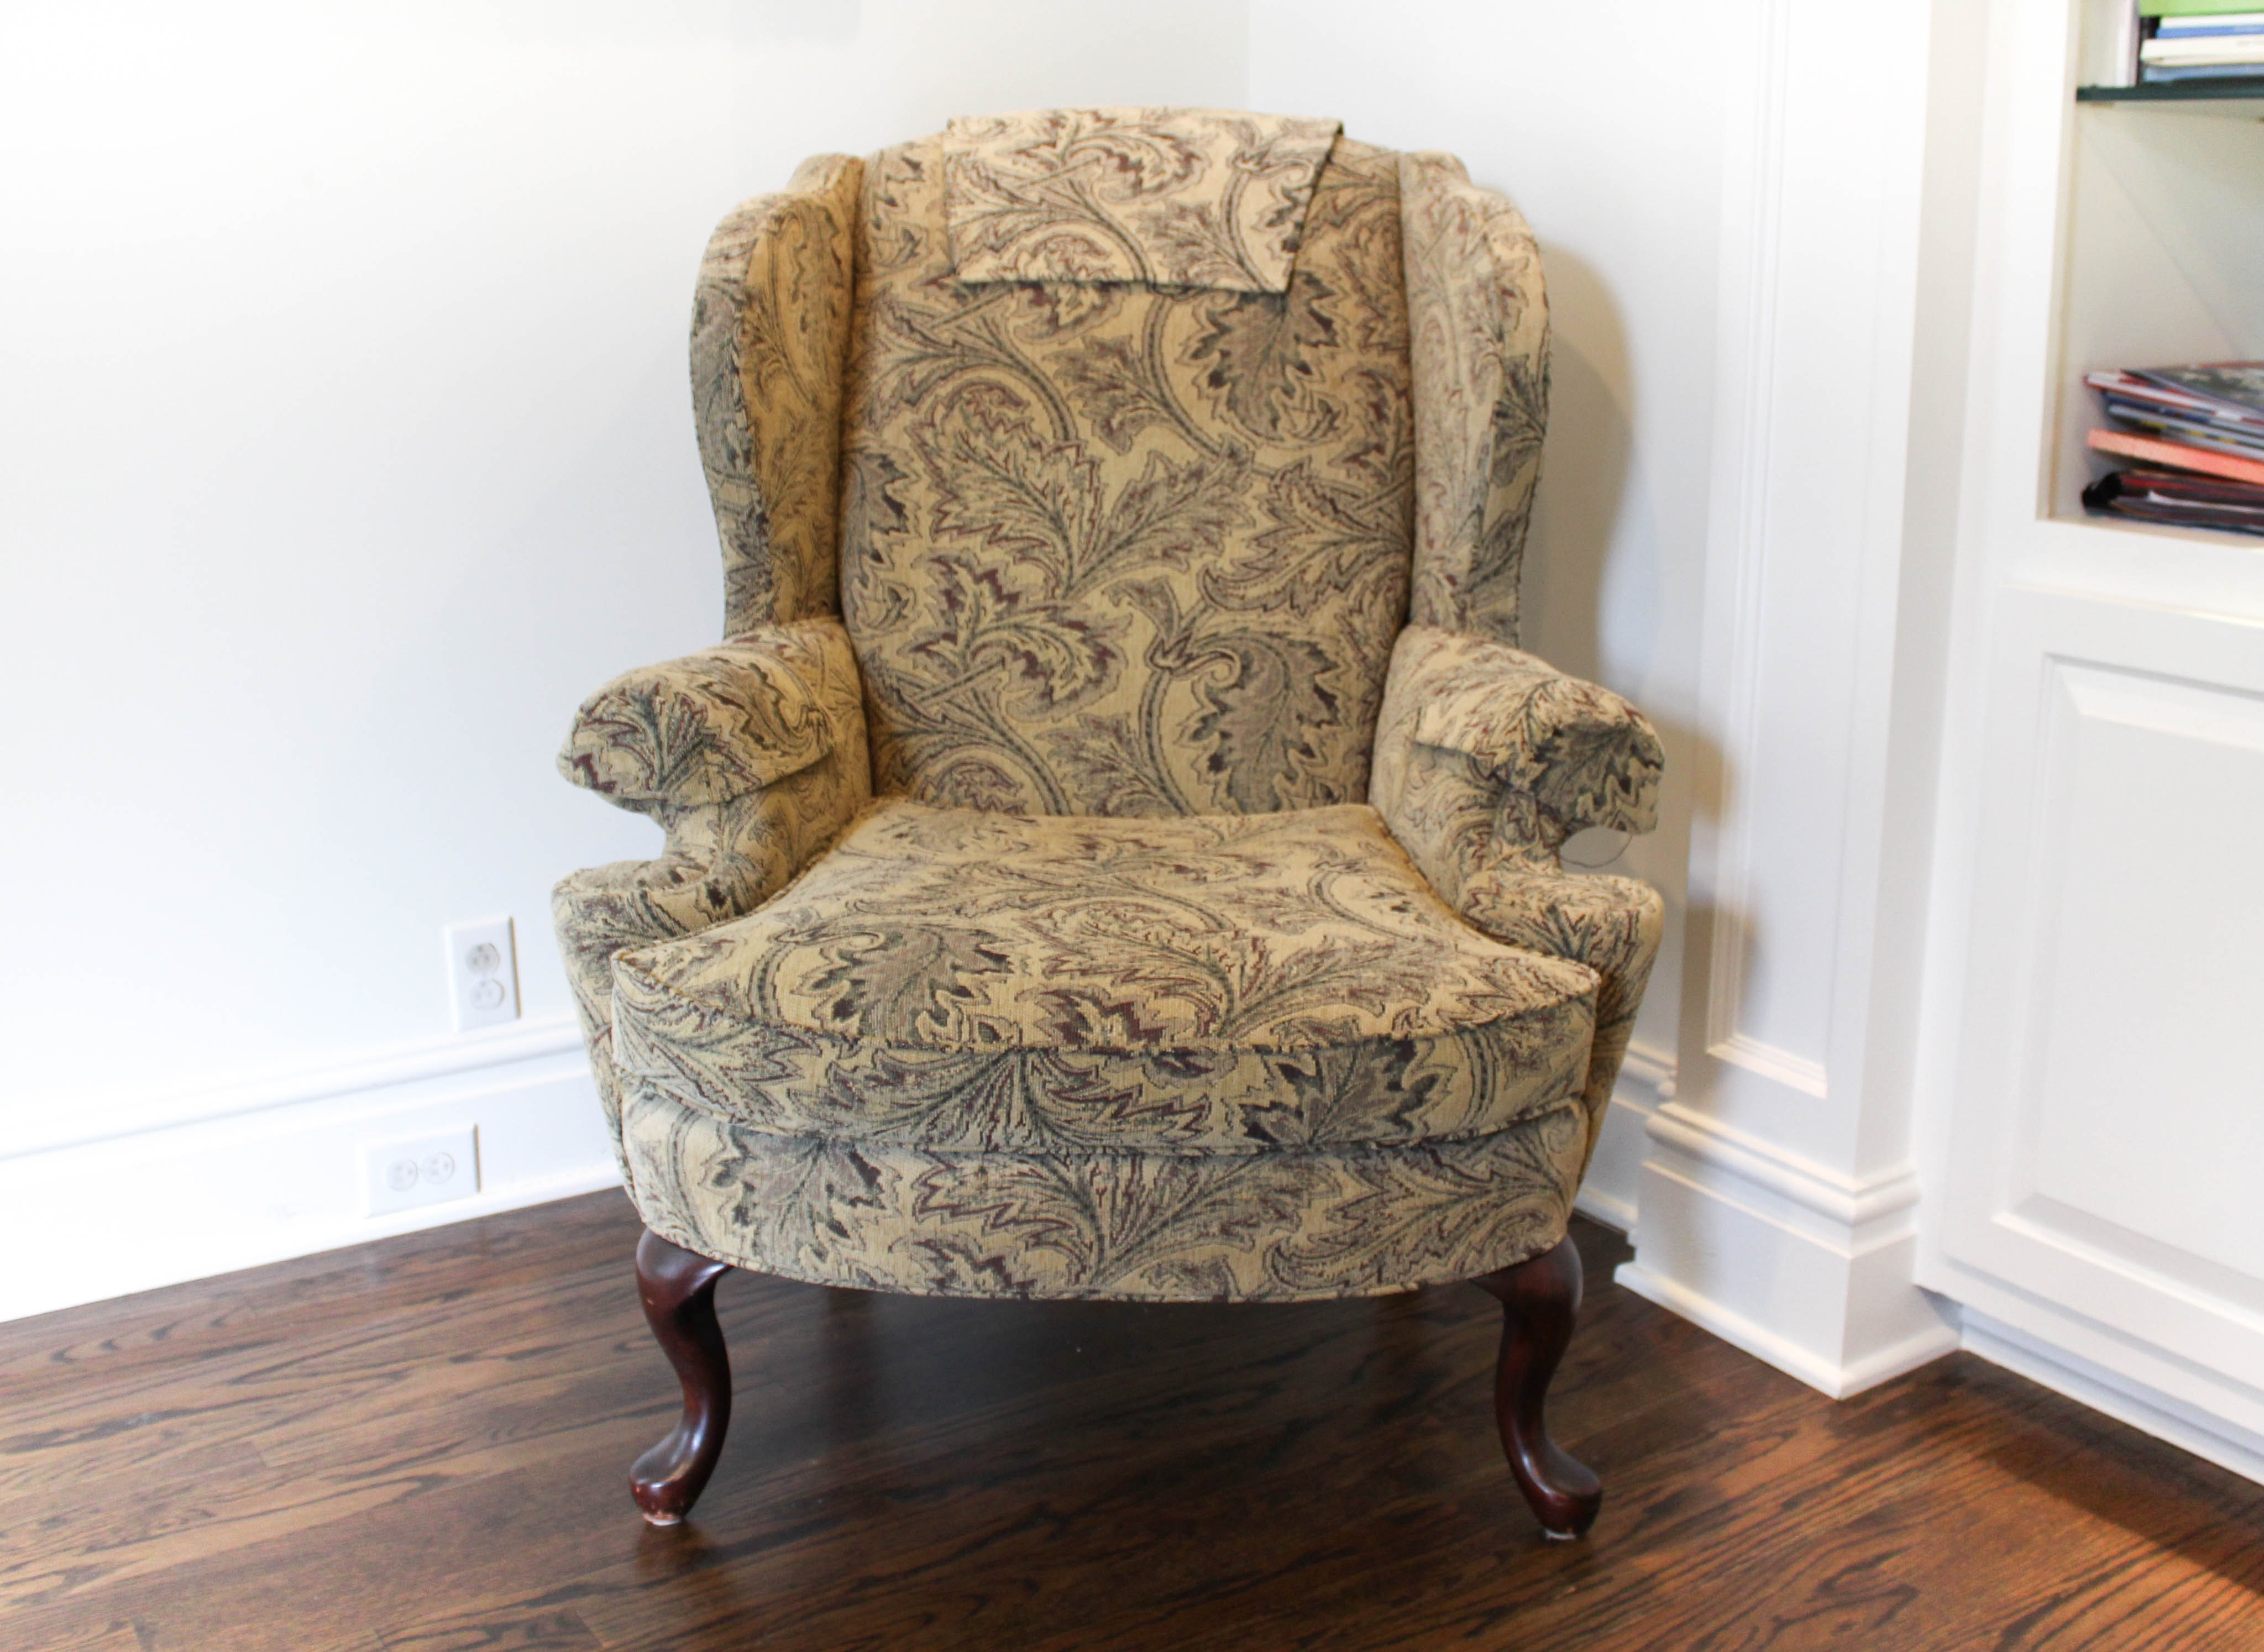 Contemporary Upholstered Wingback Chair from Norwalk